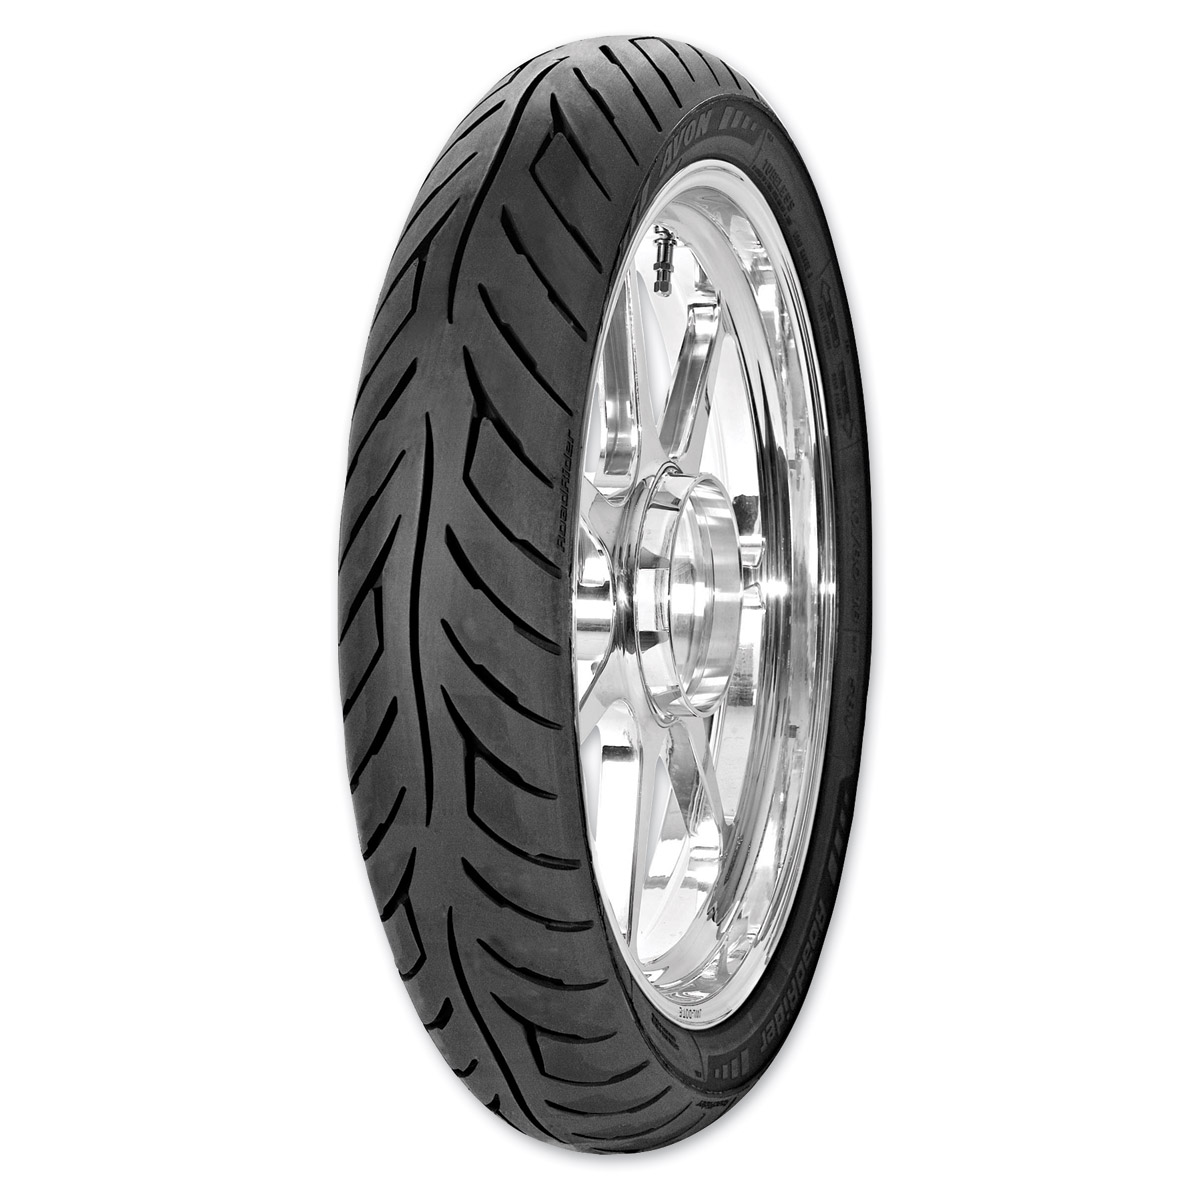 Avon AM26 Roadrider 100/80-17 Front Tire